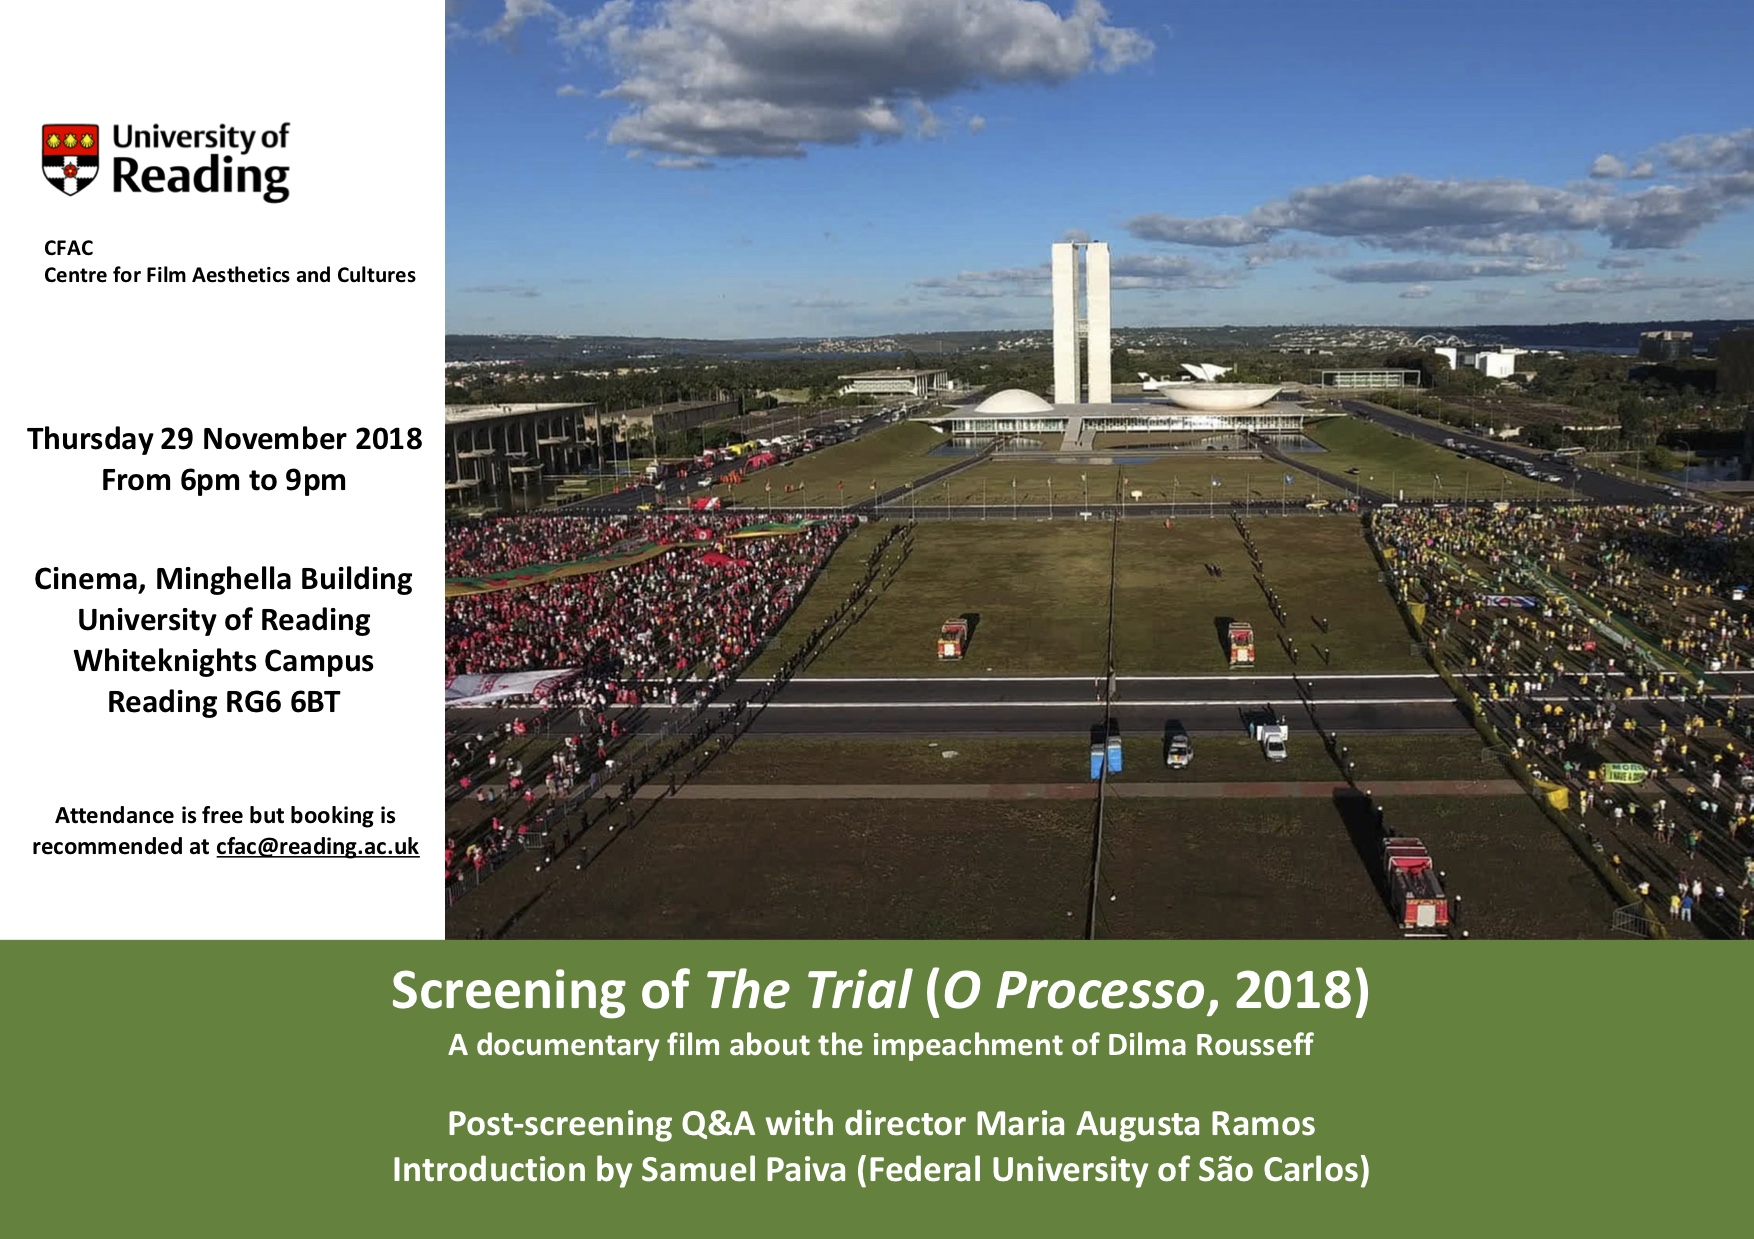 Screening of The Trial (O Processo, 2018), and Q&A with Maria Augusta Ramos